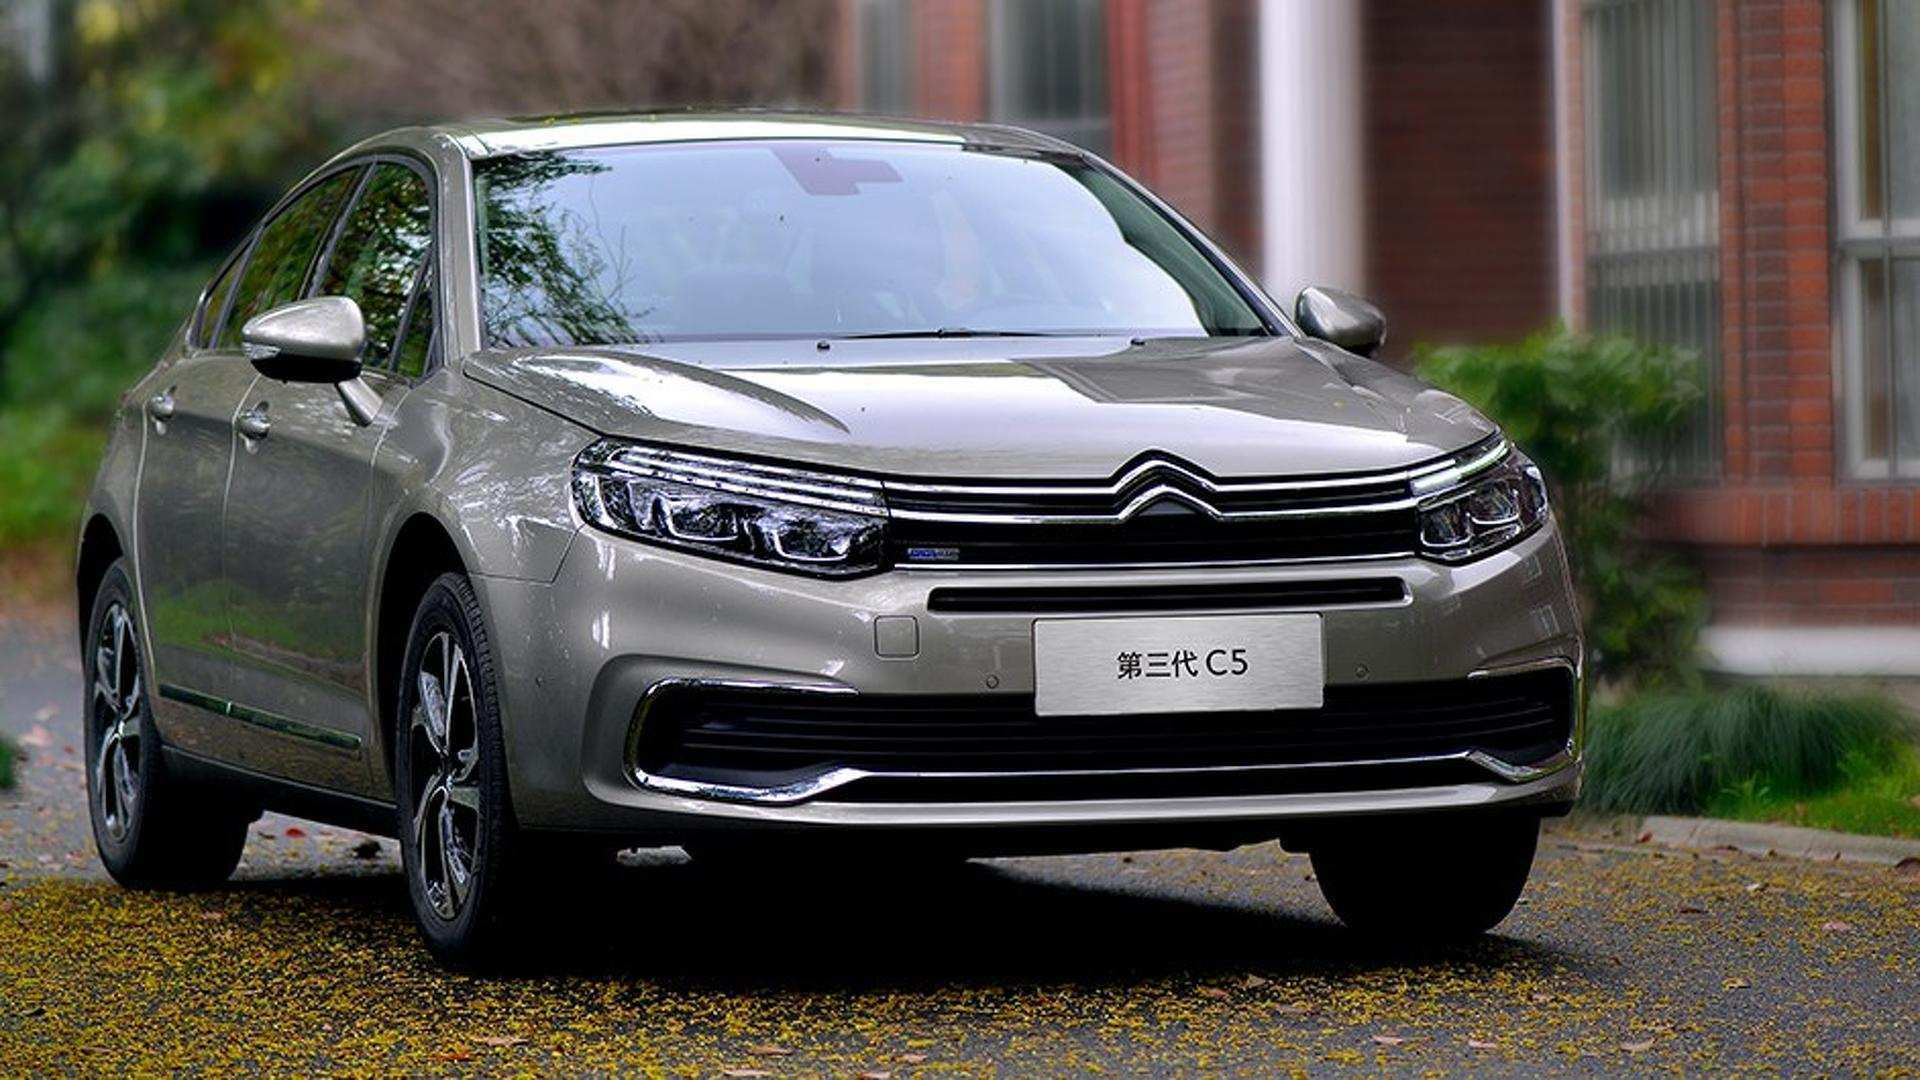 82 Best Review 2020 Citroen C5 Overview for 2020 Citroen C5